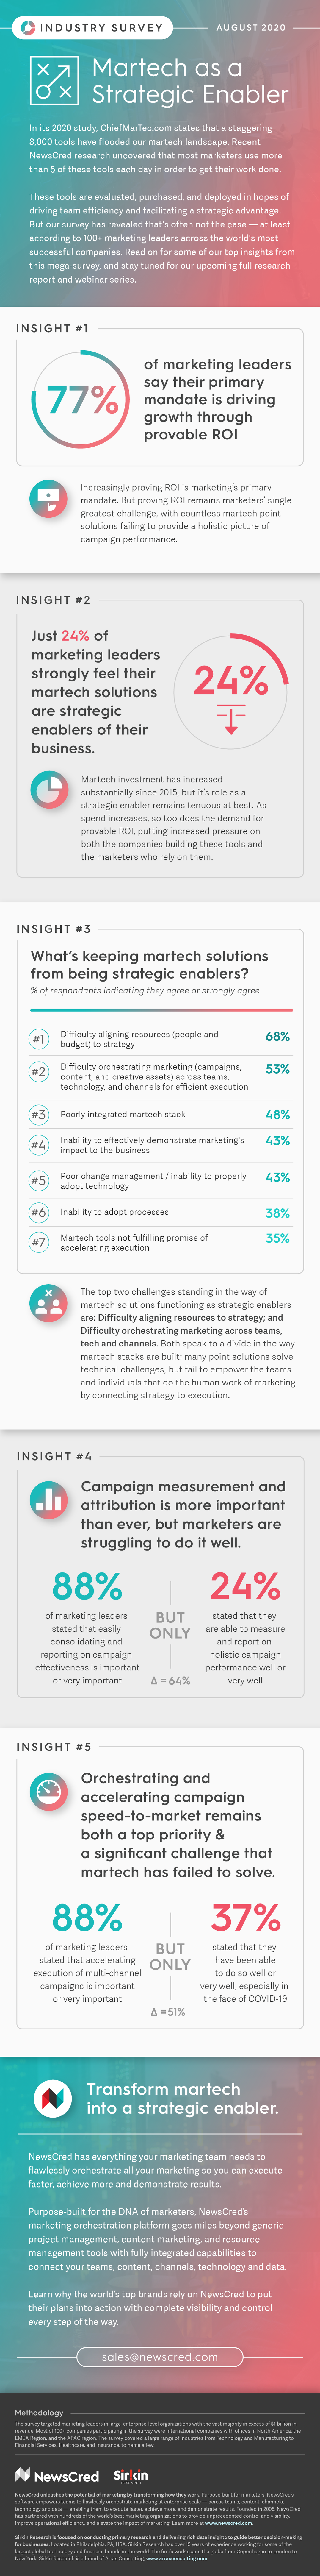 Martech Strategic Enabler Infographic 2020 (1).png